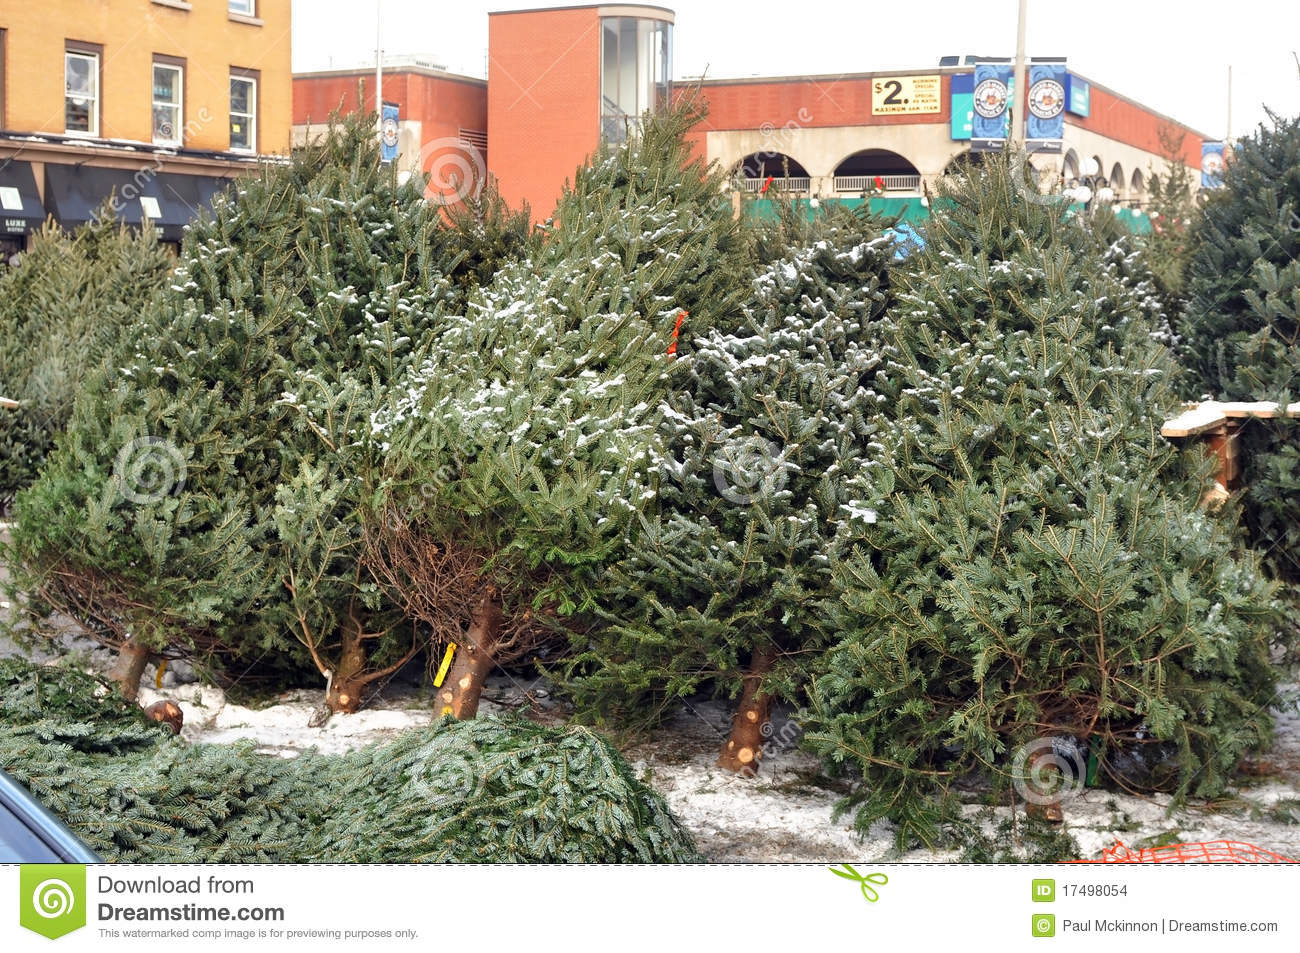 Christmas Trees For Sale Editorial Stock Image   Image  17498054 JWgAbKTx